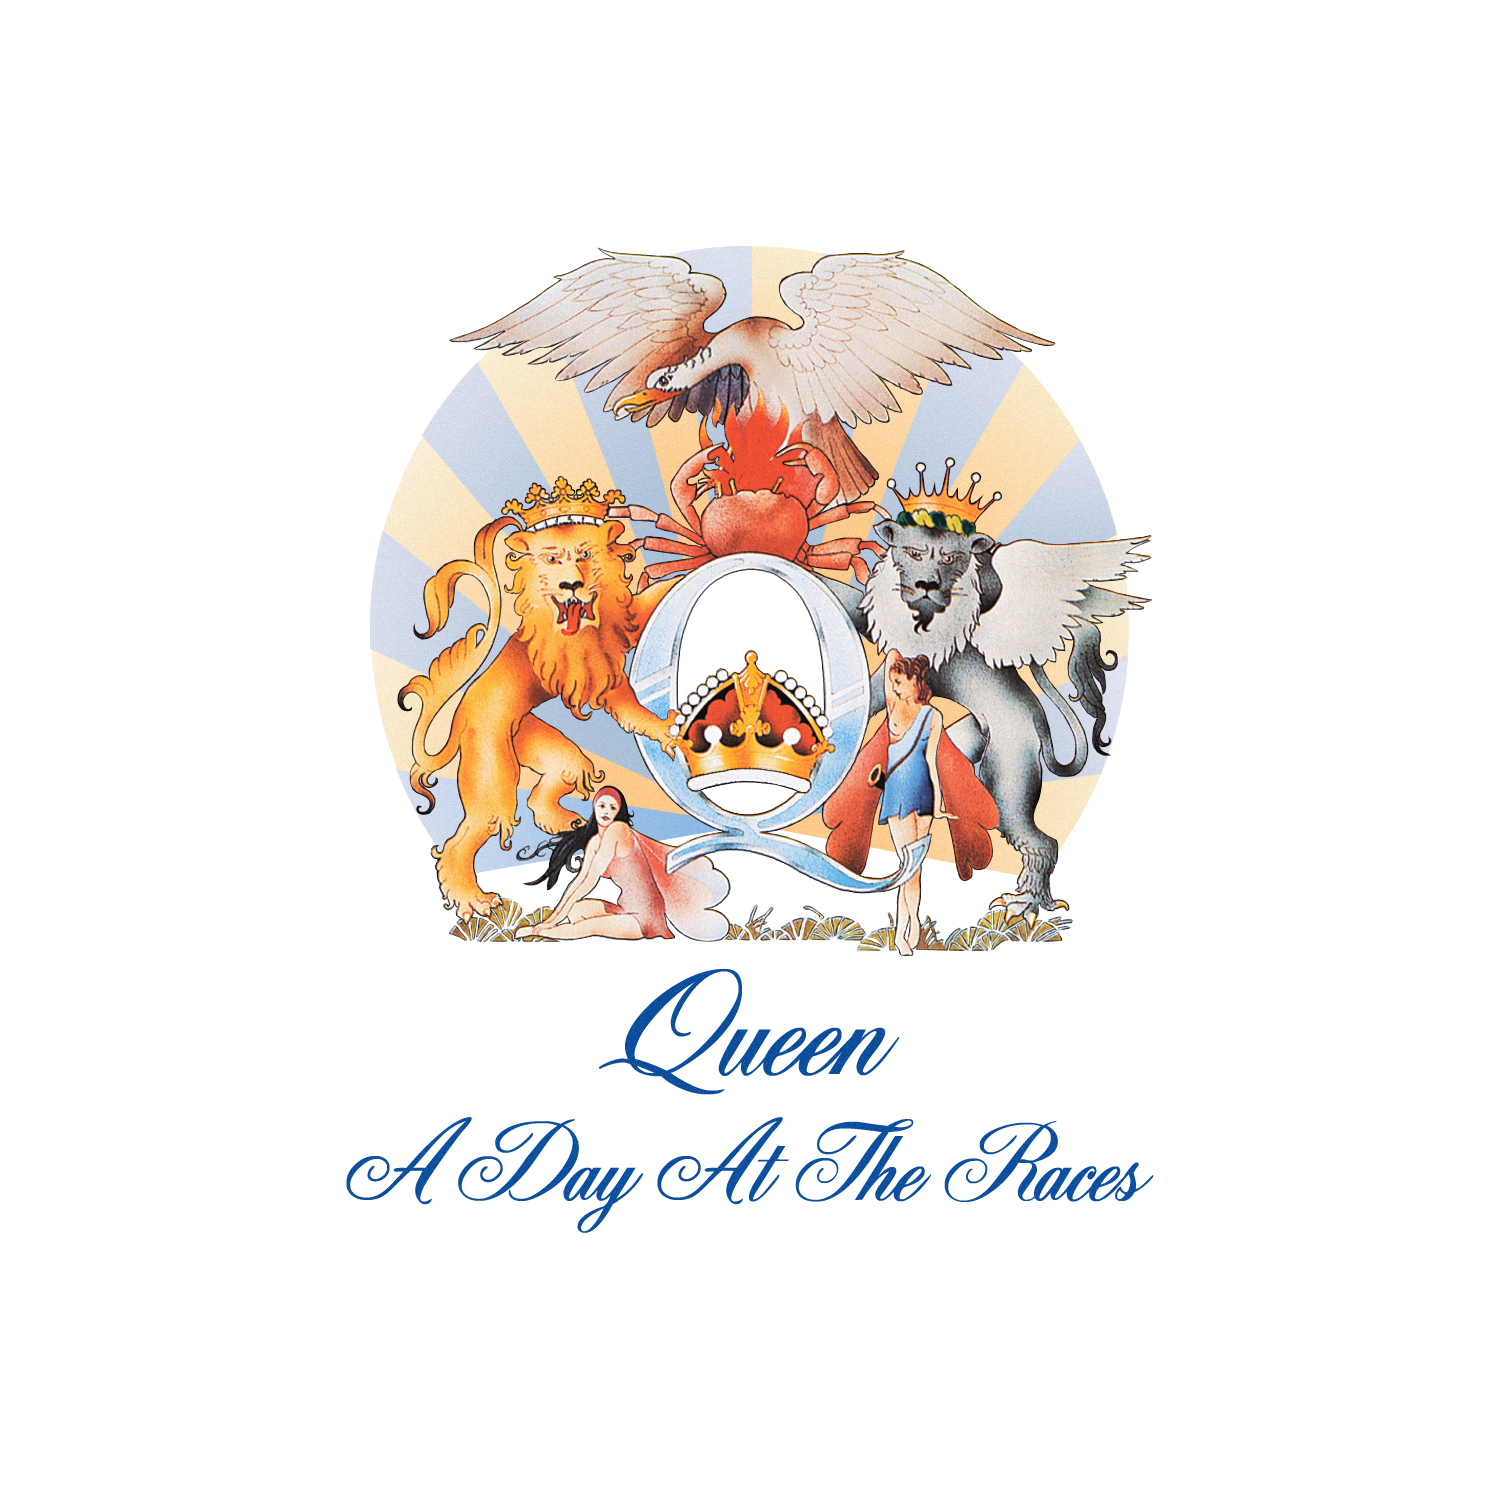 Queen - A Sunny Day at the Races